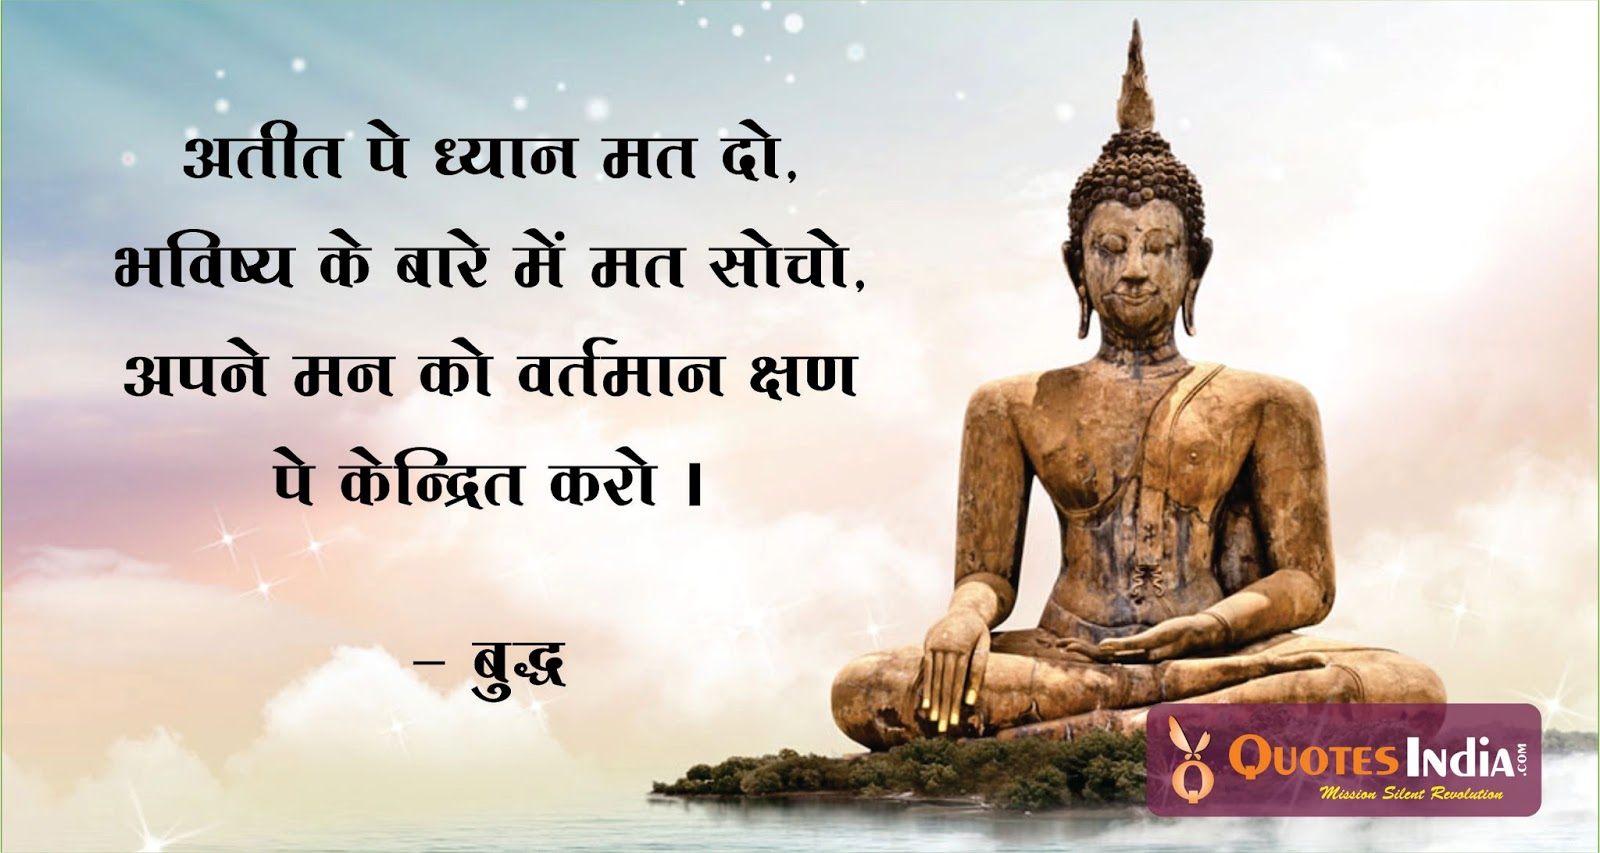 Atit Pe Dhyan Mat Do Buddha Quotes India Quotes Health